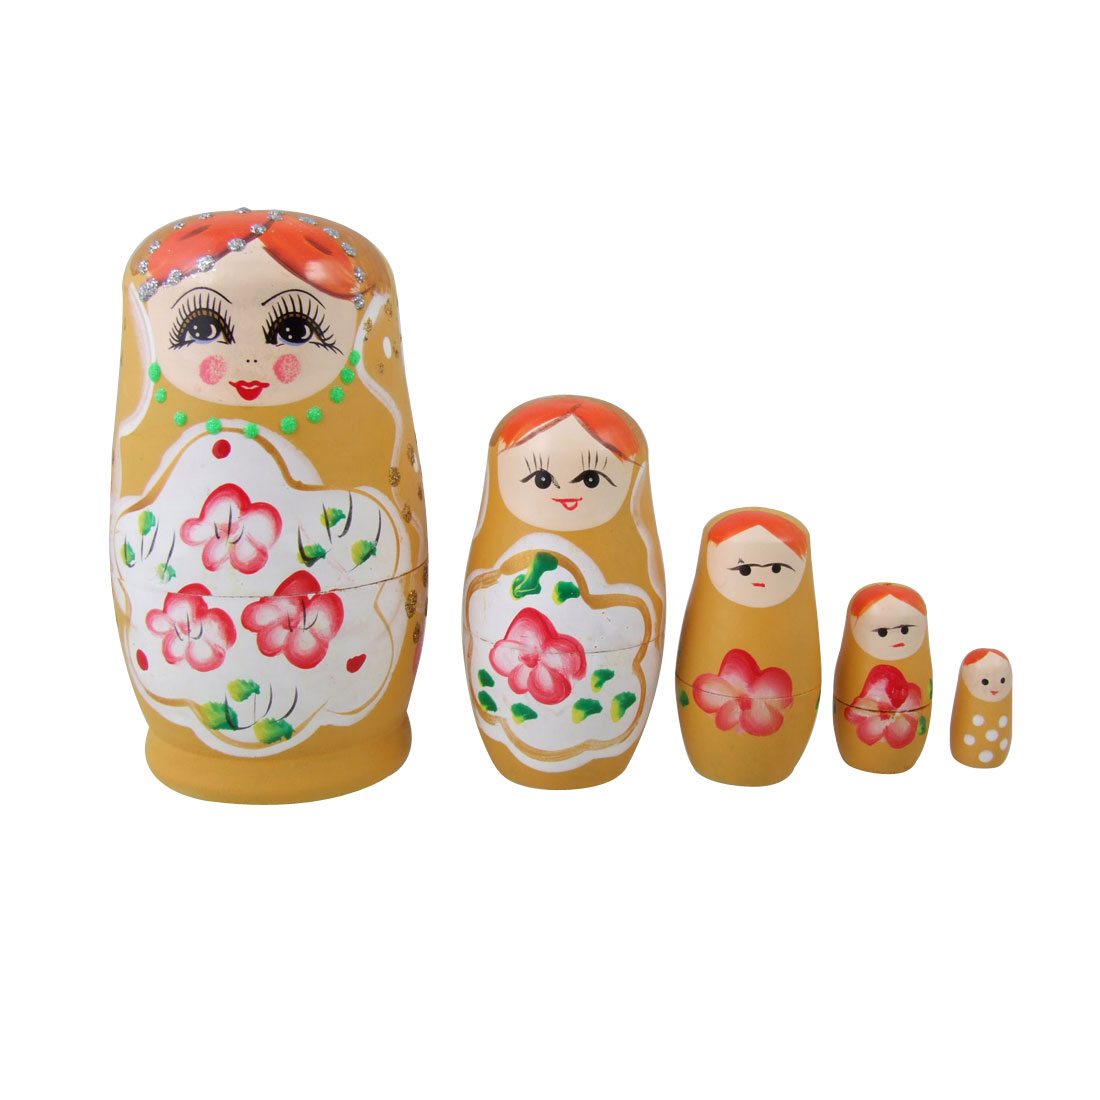 5 Pcs Flower Yellow Girl Print Wooden Nesting Babushka Doll